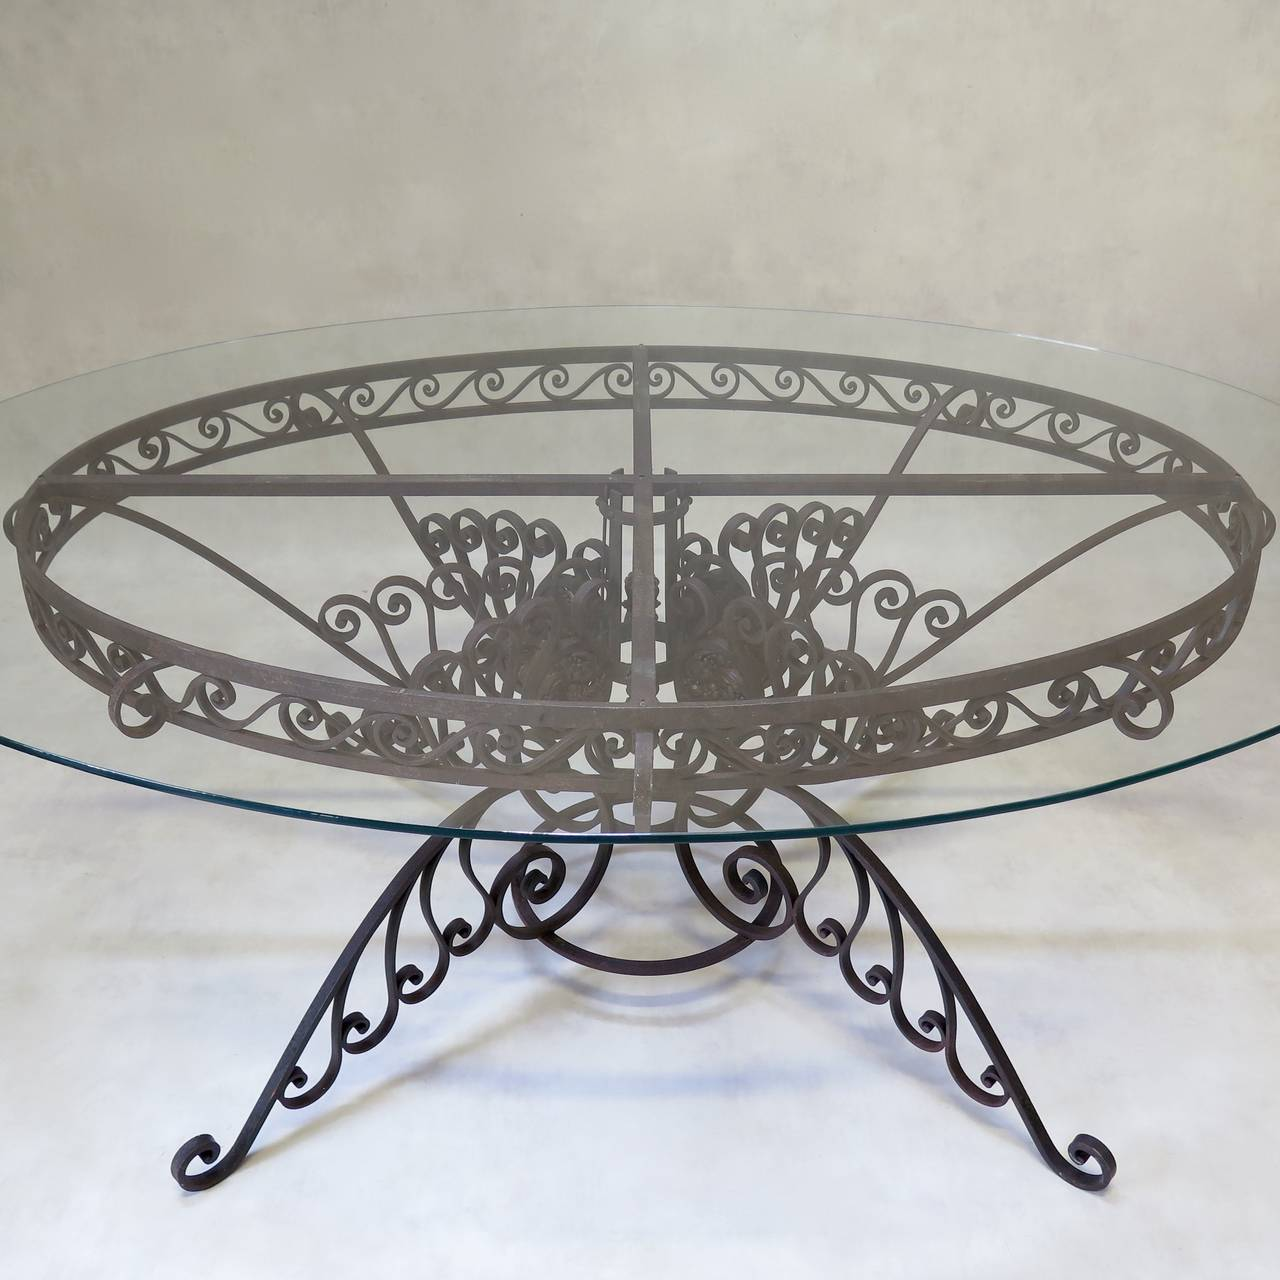 20th Century Spectacular Oval Wrought Iron Art Deco Dining Table, France, 1930s For Sale